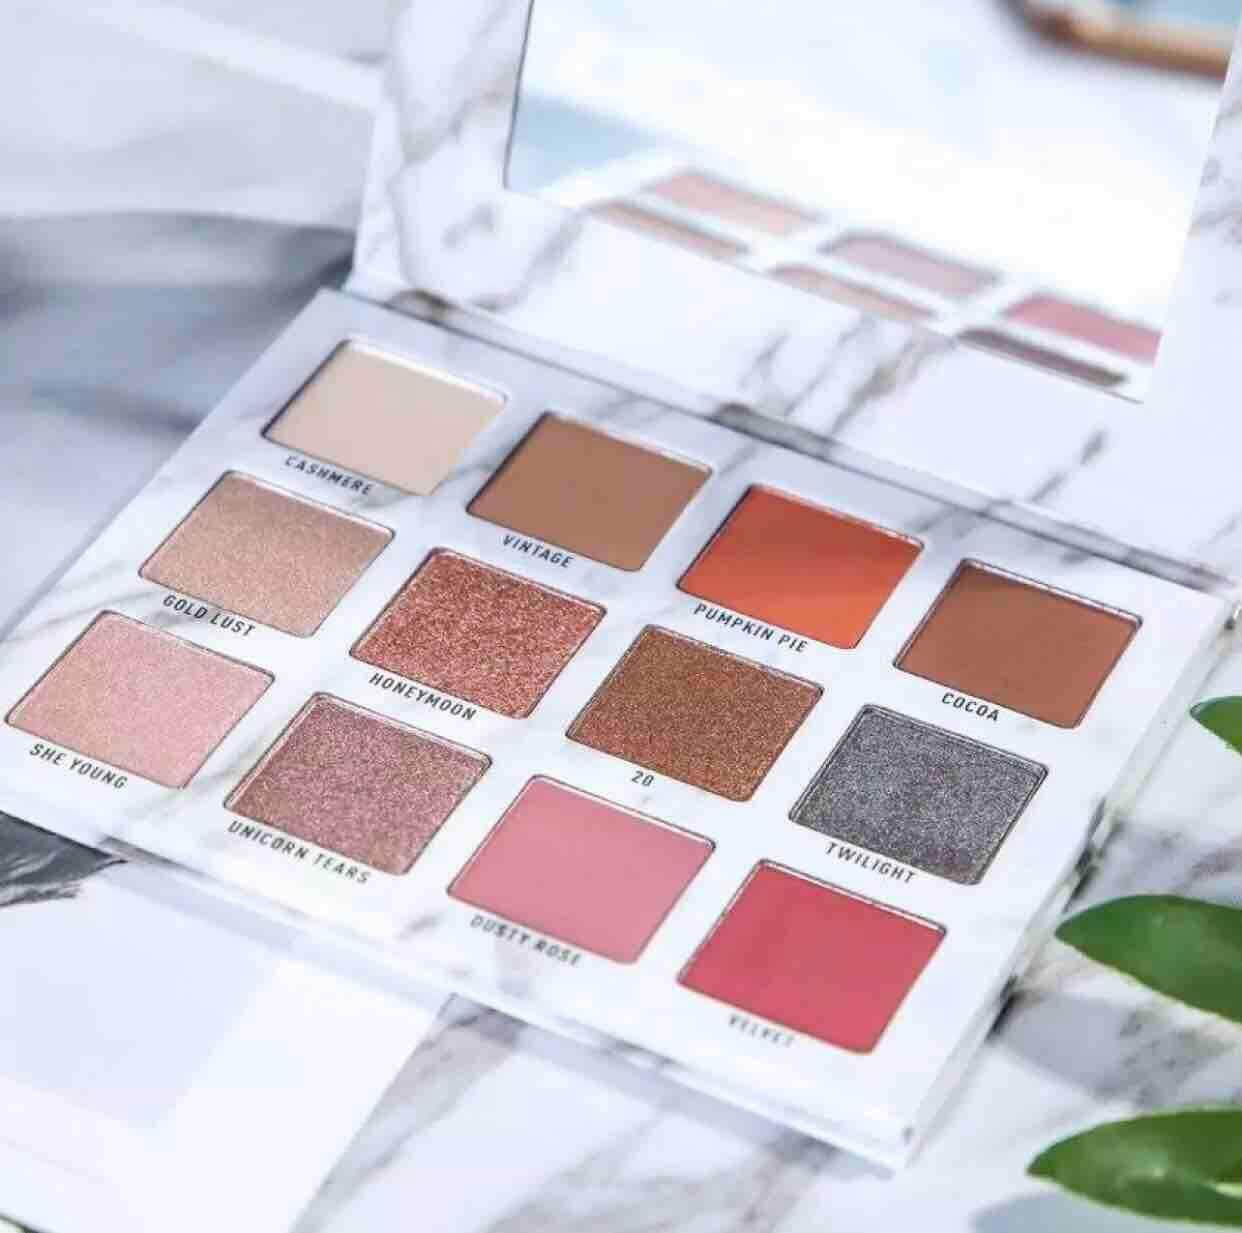 VENUS MARBLE EYESHADOW PALETTE 12 COLOURS PERFECT EYESHADOW + FREE GIFT